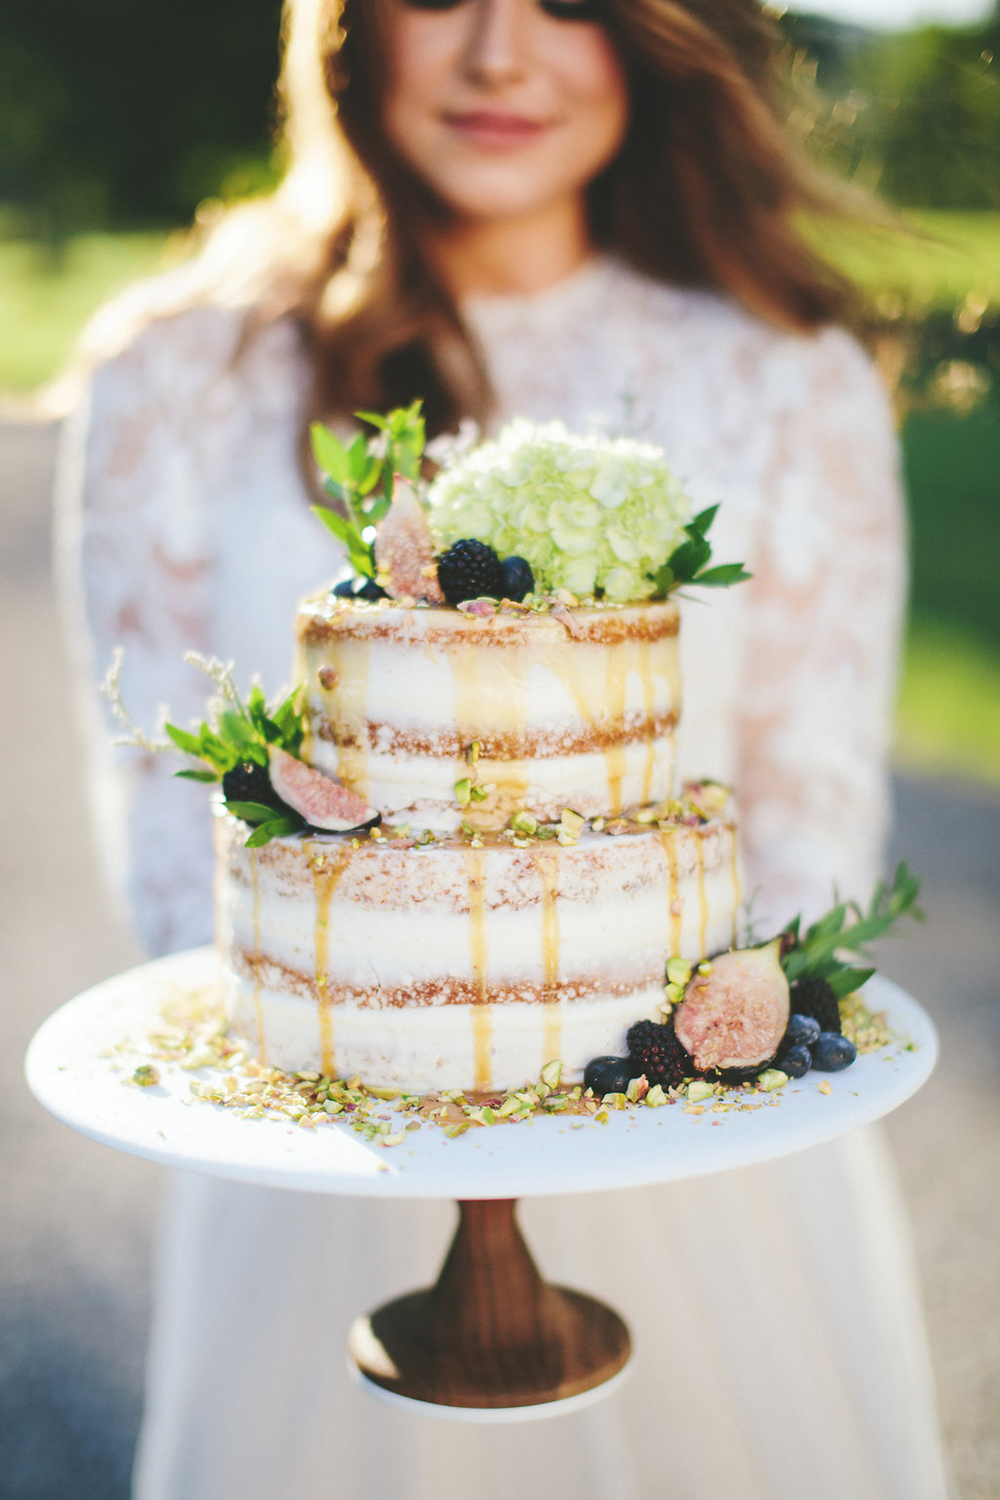 lightly iced wedding cakes with figs - photo by Shots by Cheyenne https://ruffledblog.com/farm-to-table-wedding-inspiration-in-nashville